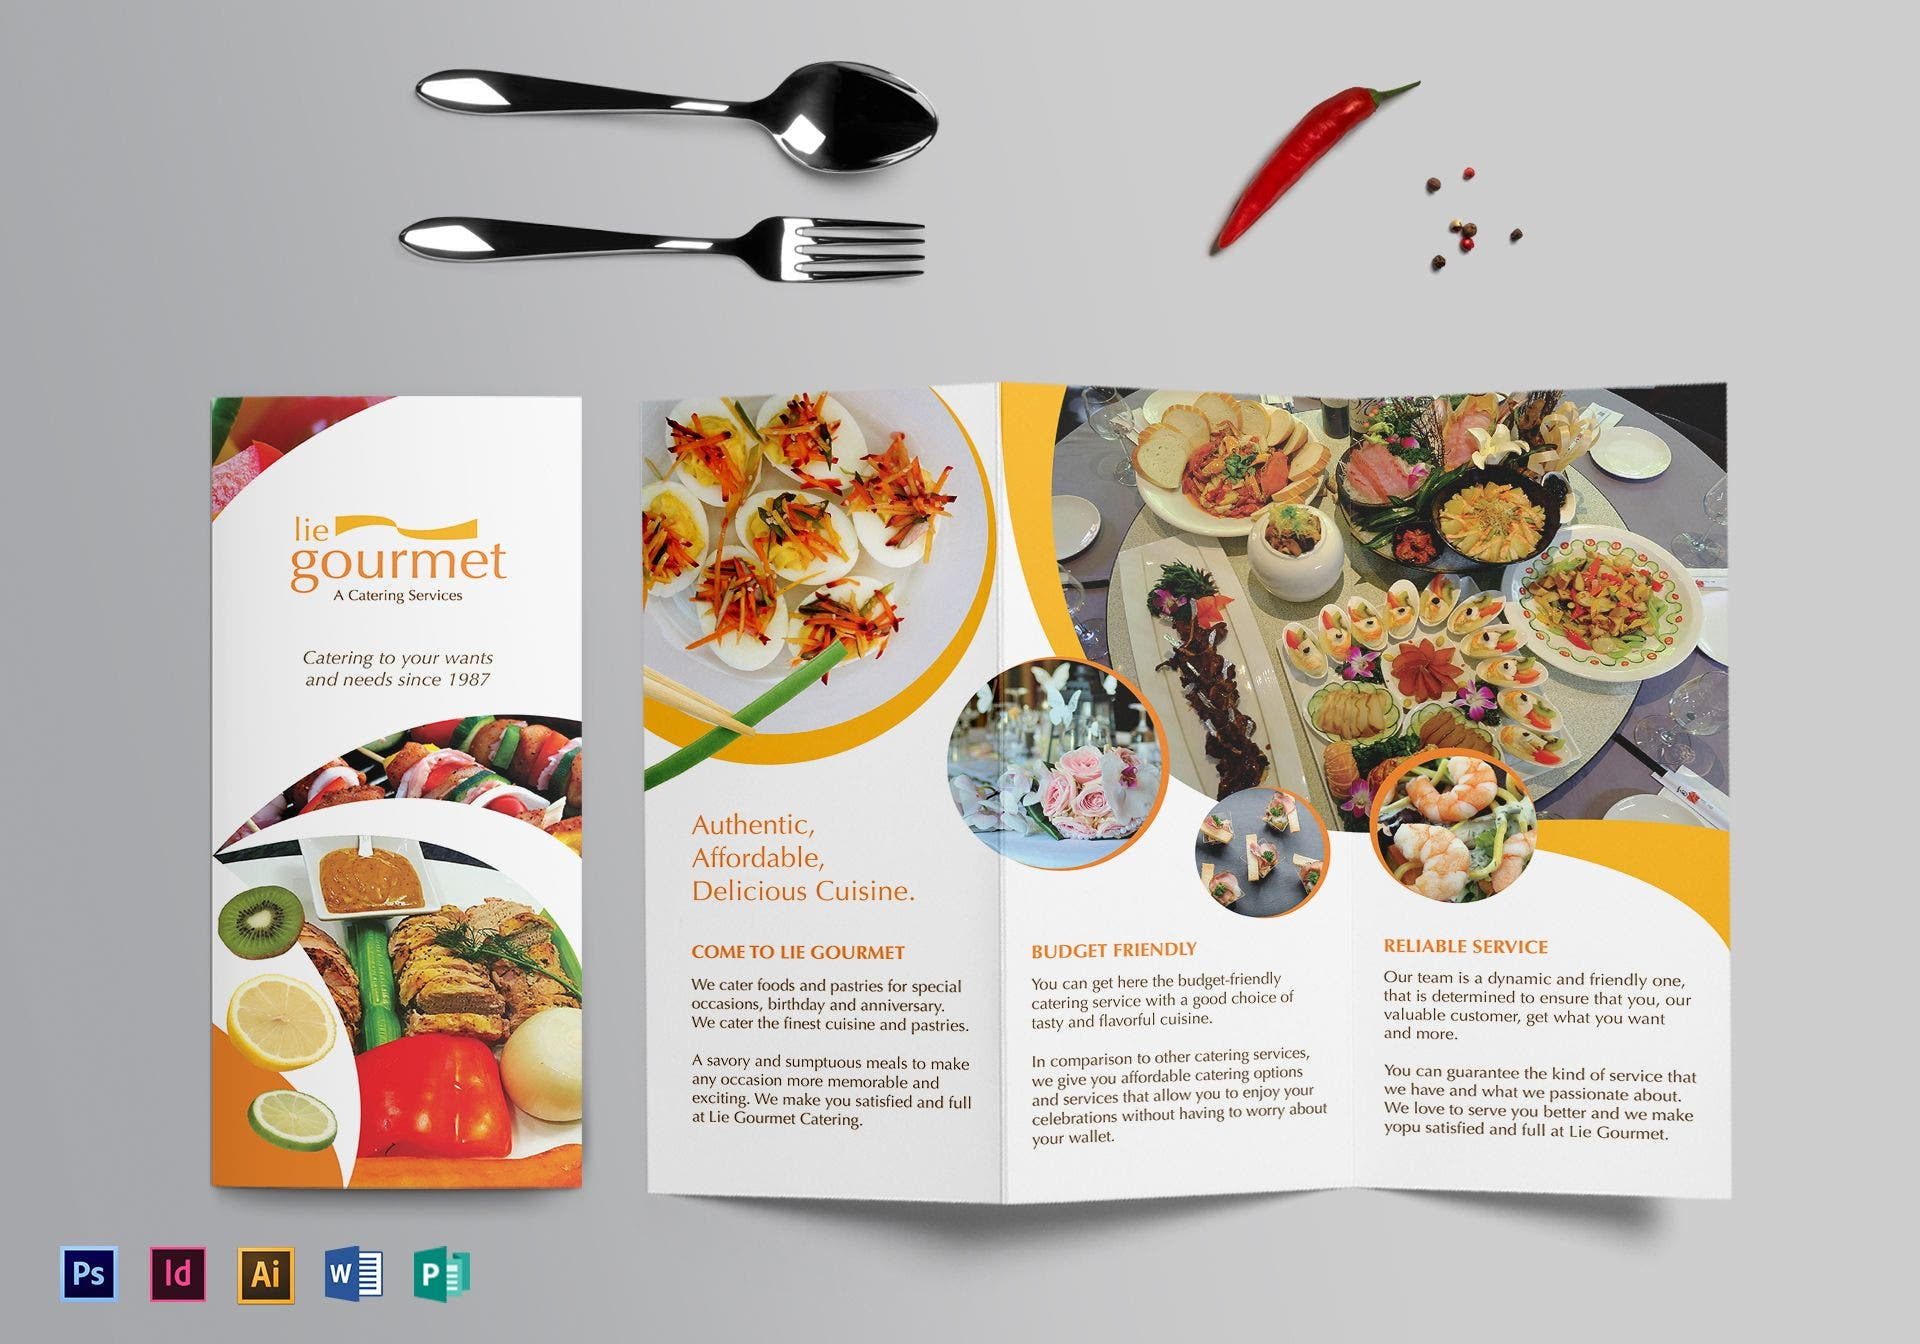 gourmet catering services brochure sample